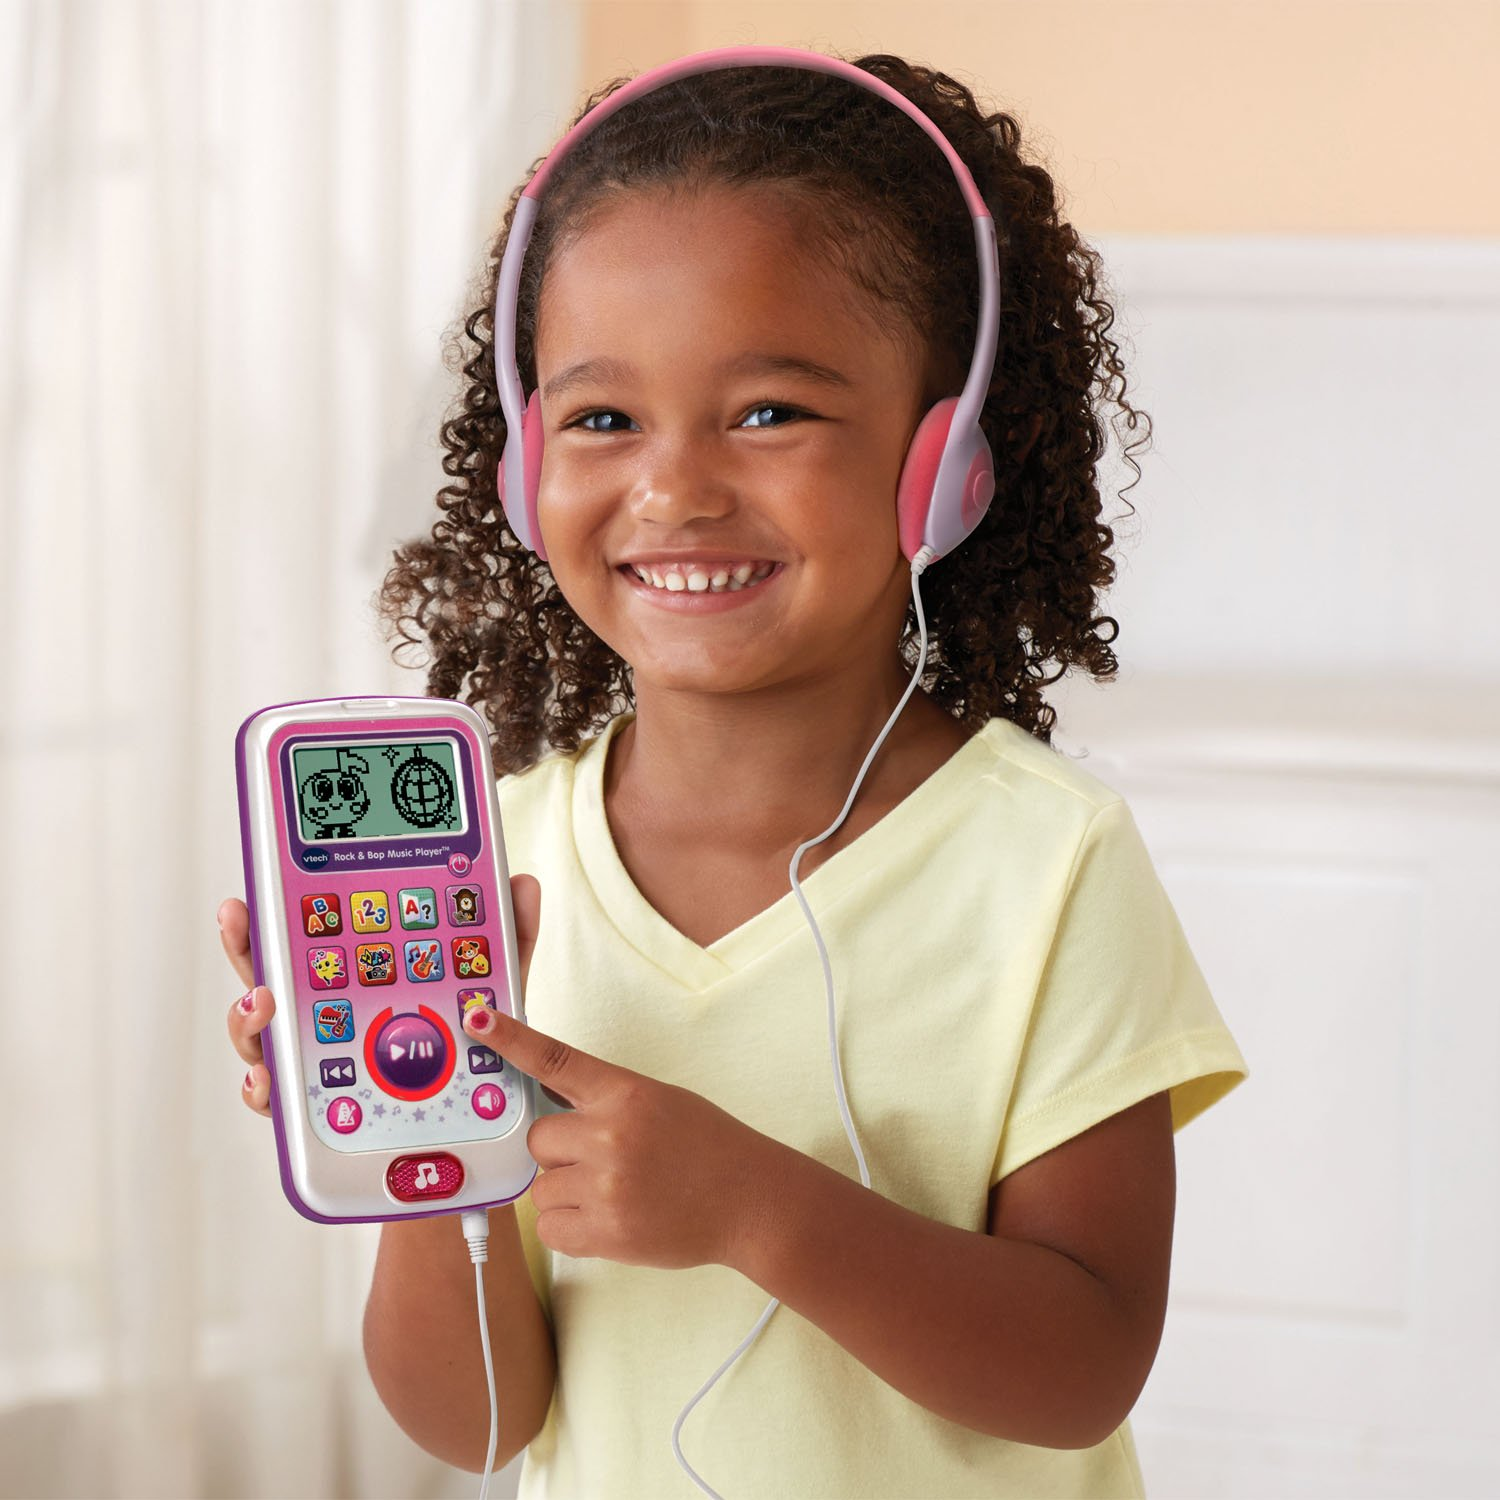 VTech Rock and Bop Music Player Amazon Exclusive, Pink by VTech (Image #4)